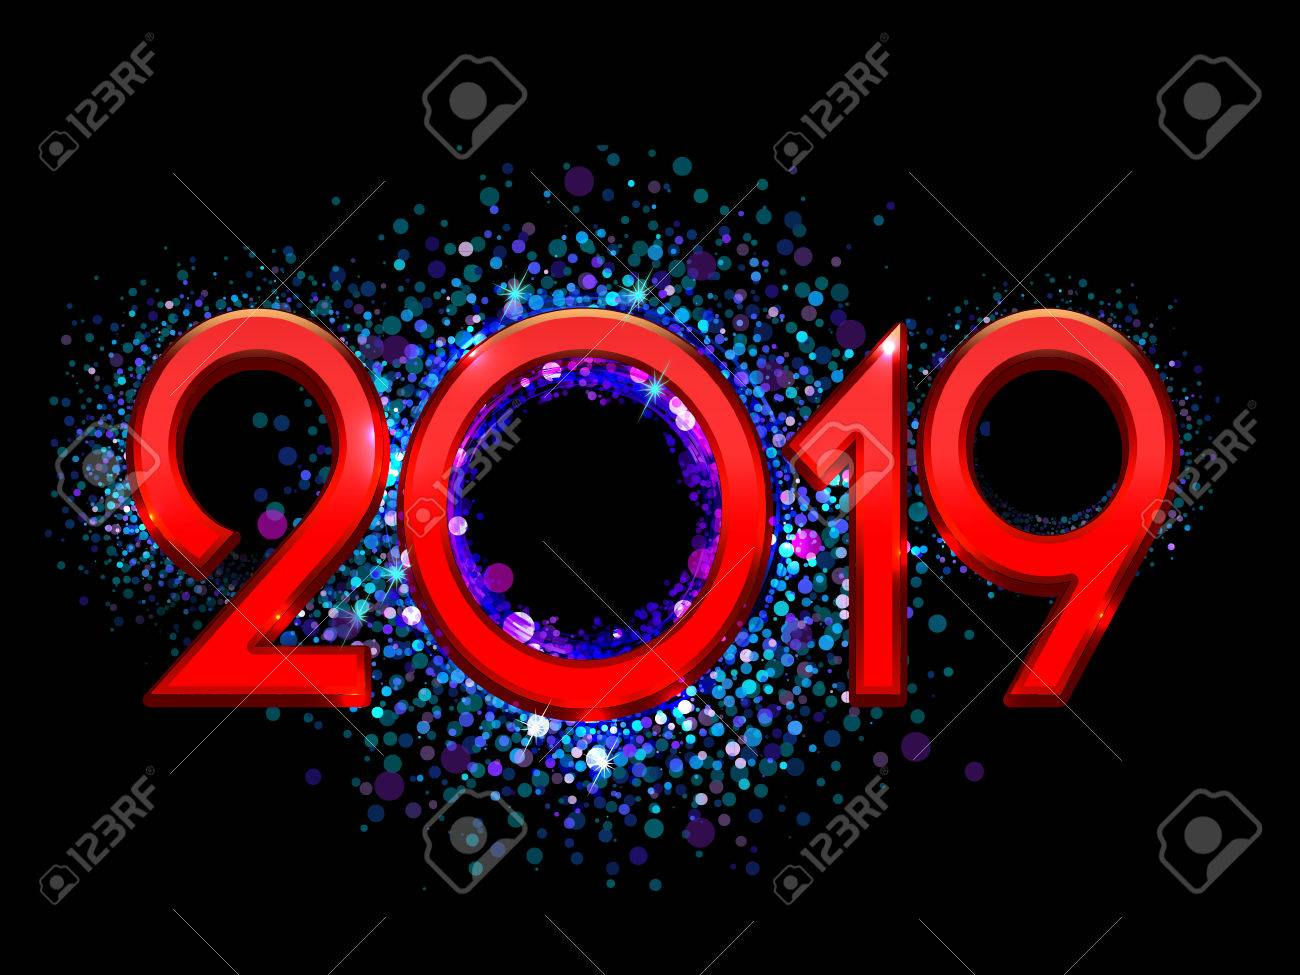 2019 Happy New Year bright red text on a black background